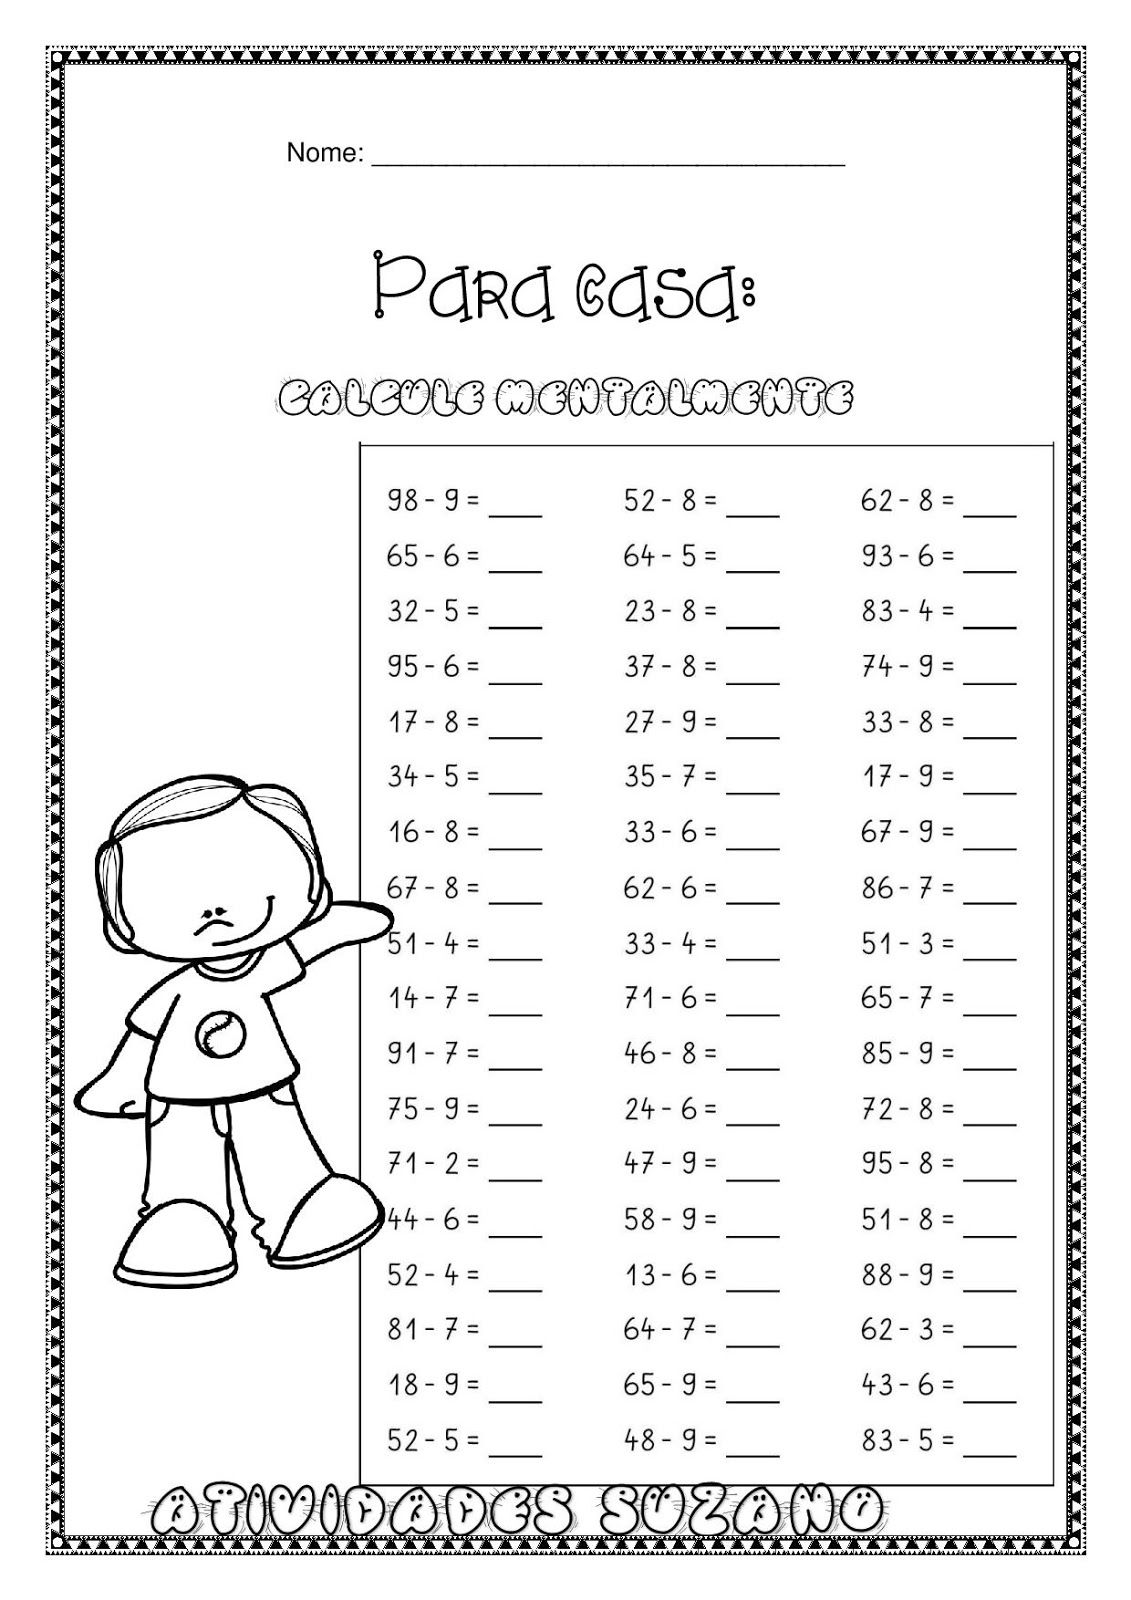 Pin by Maria on Math in 2018 | Pinterest | Math, School and ...